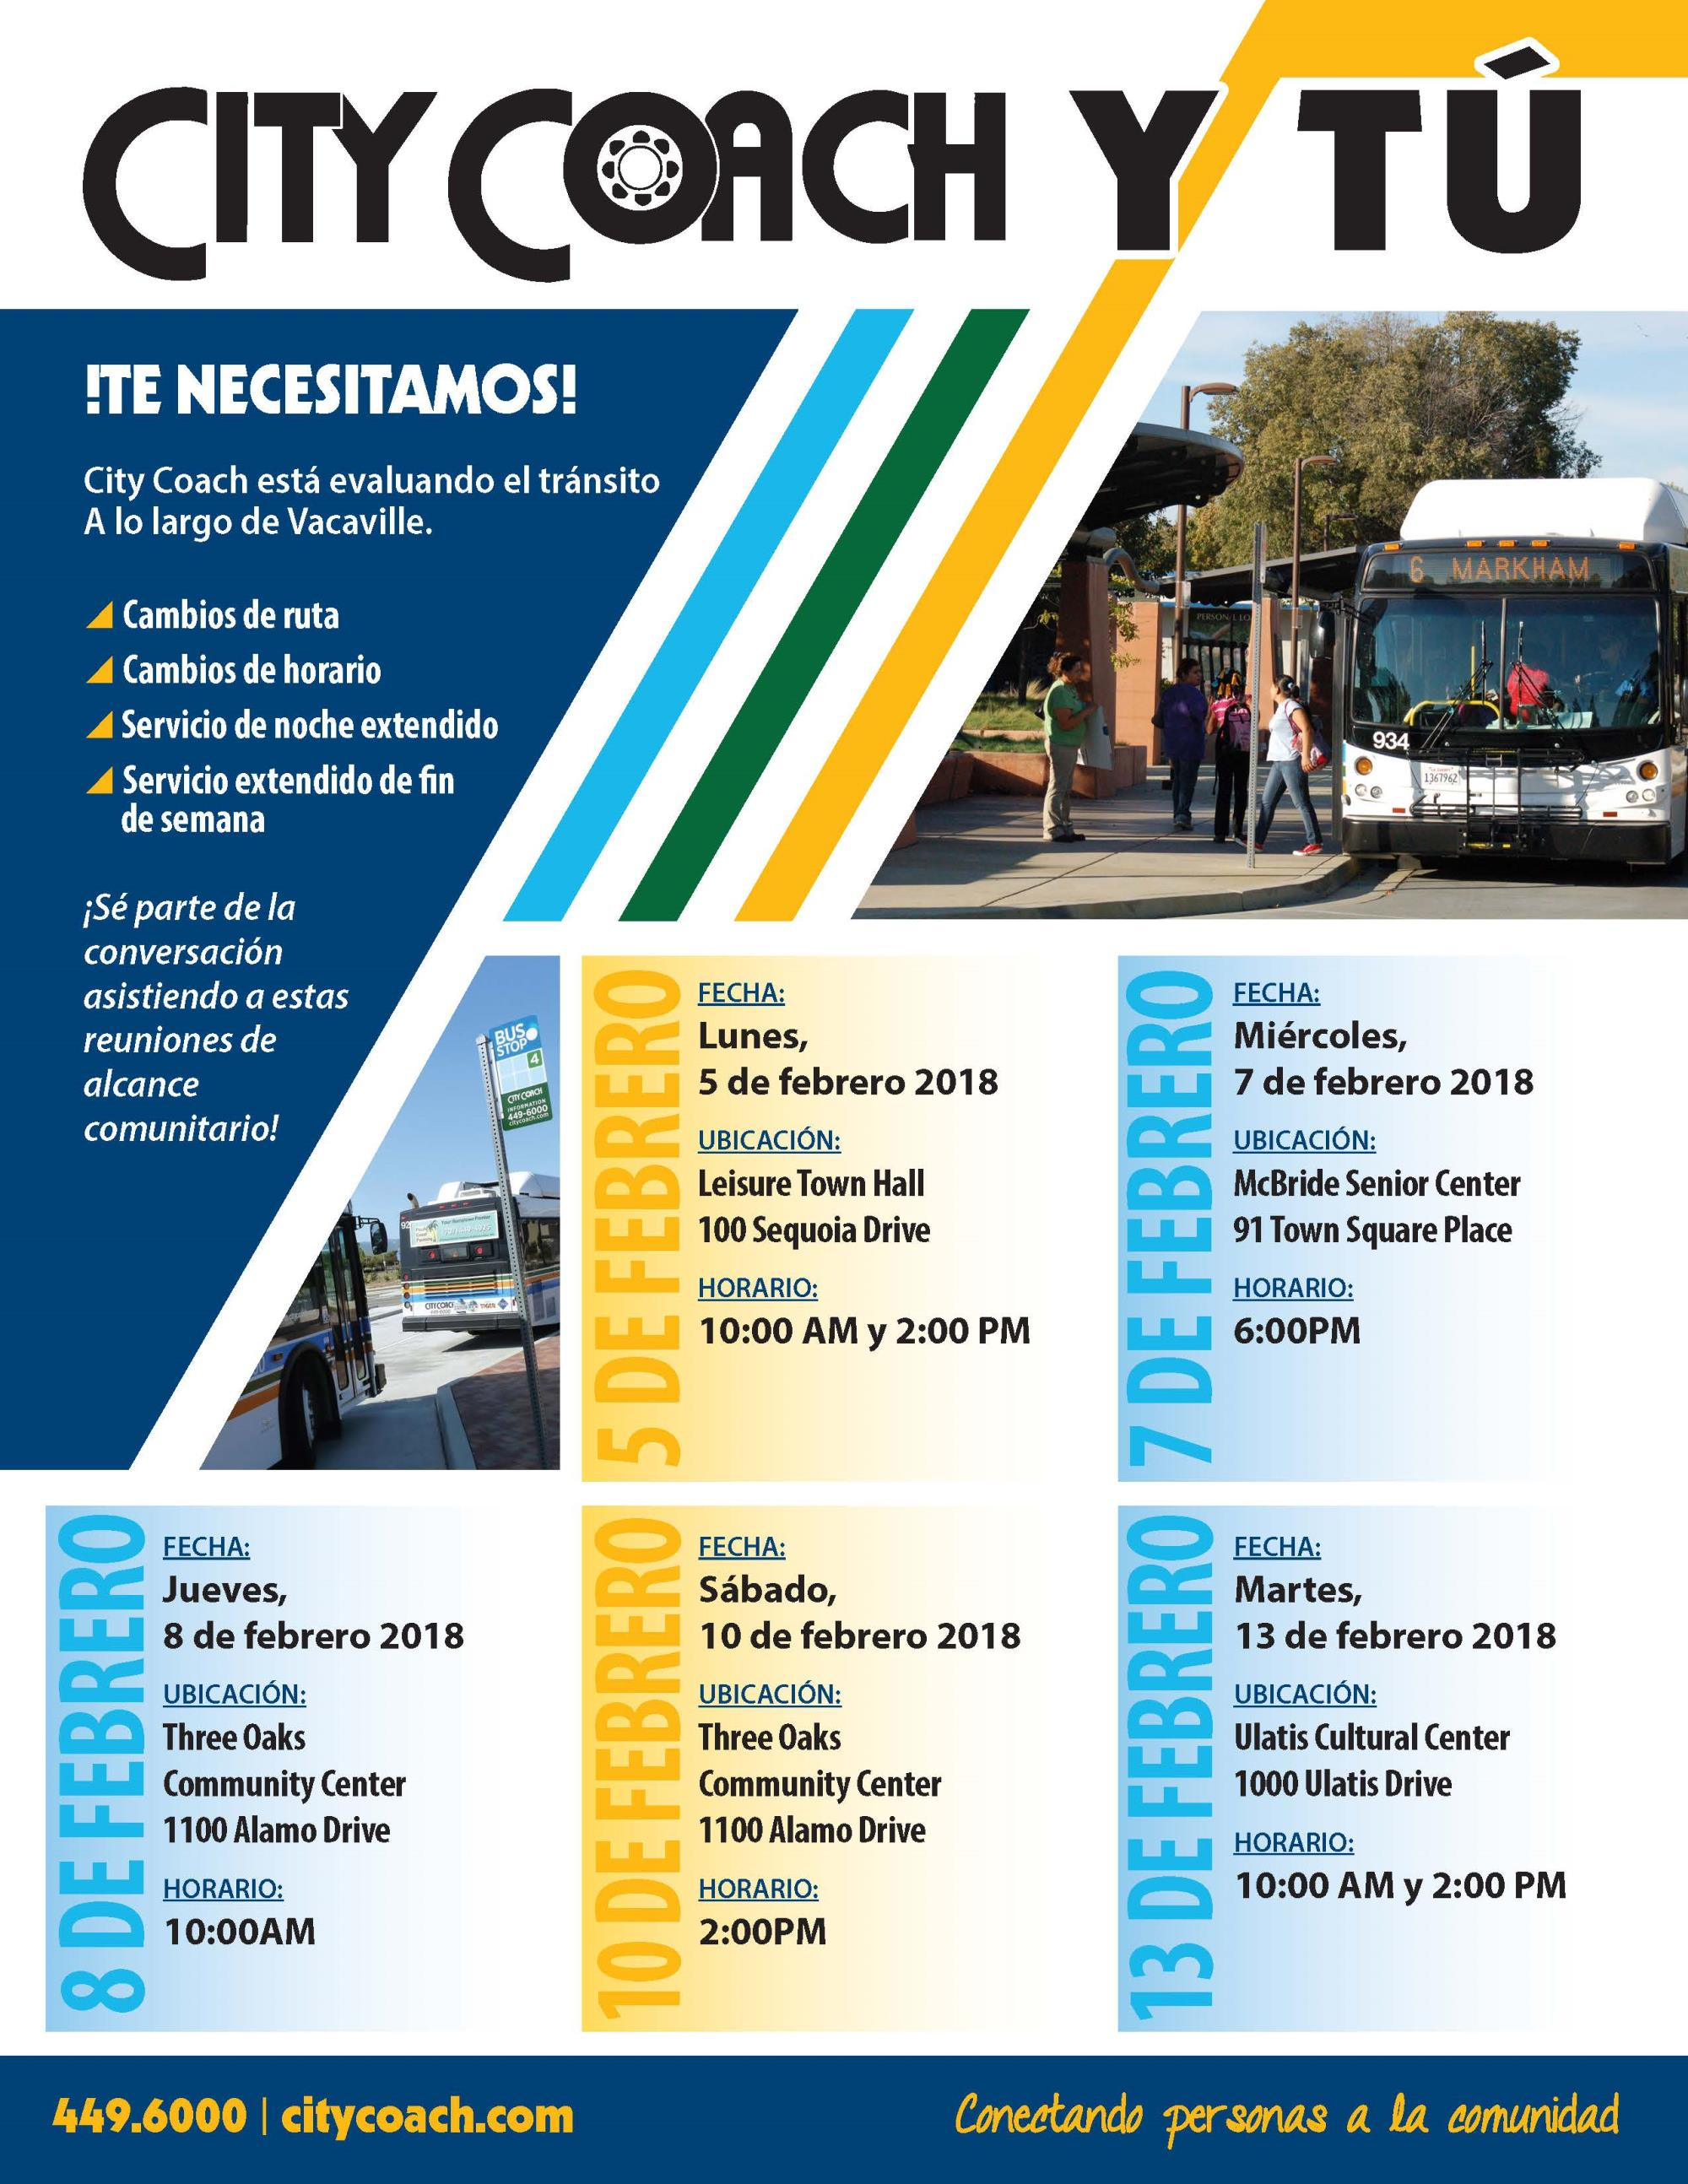 Public notice flyer in Spanish for meetings being held by City Coach regarding updates, news and feedback from riders.